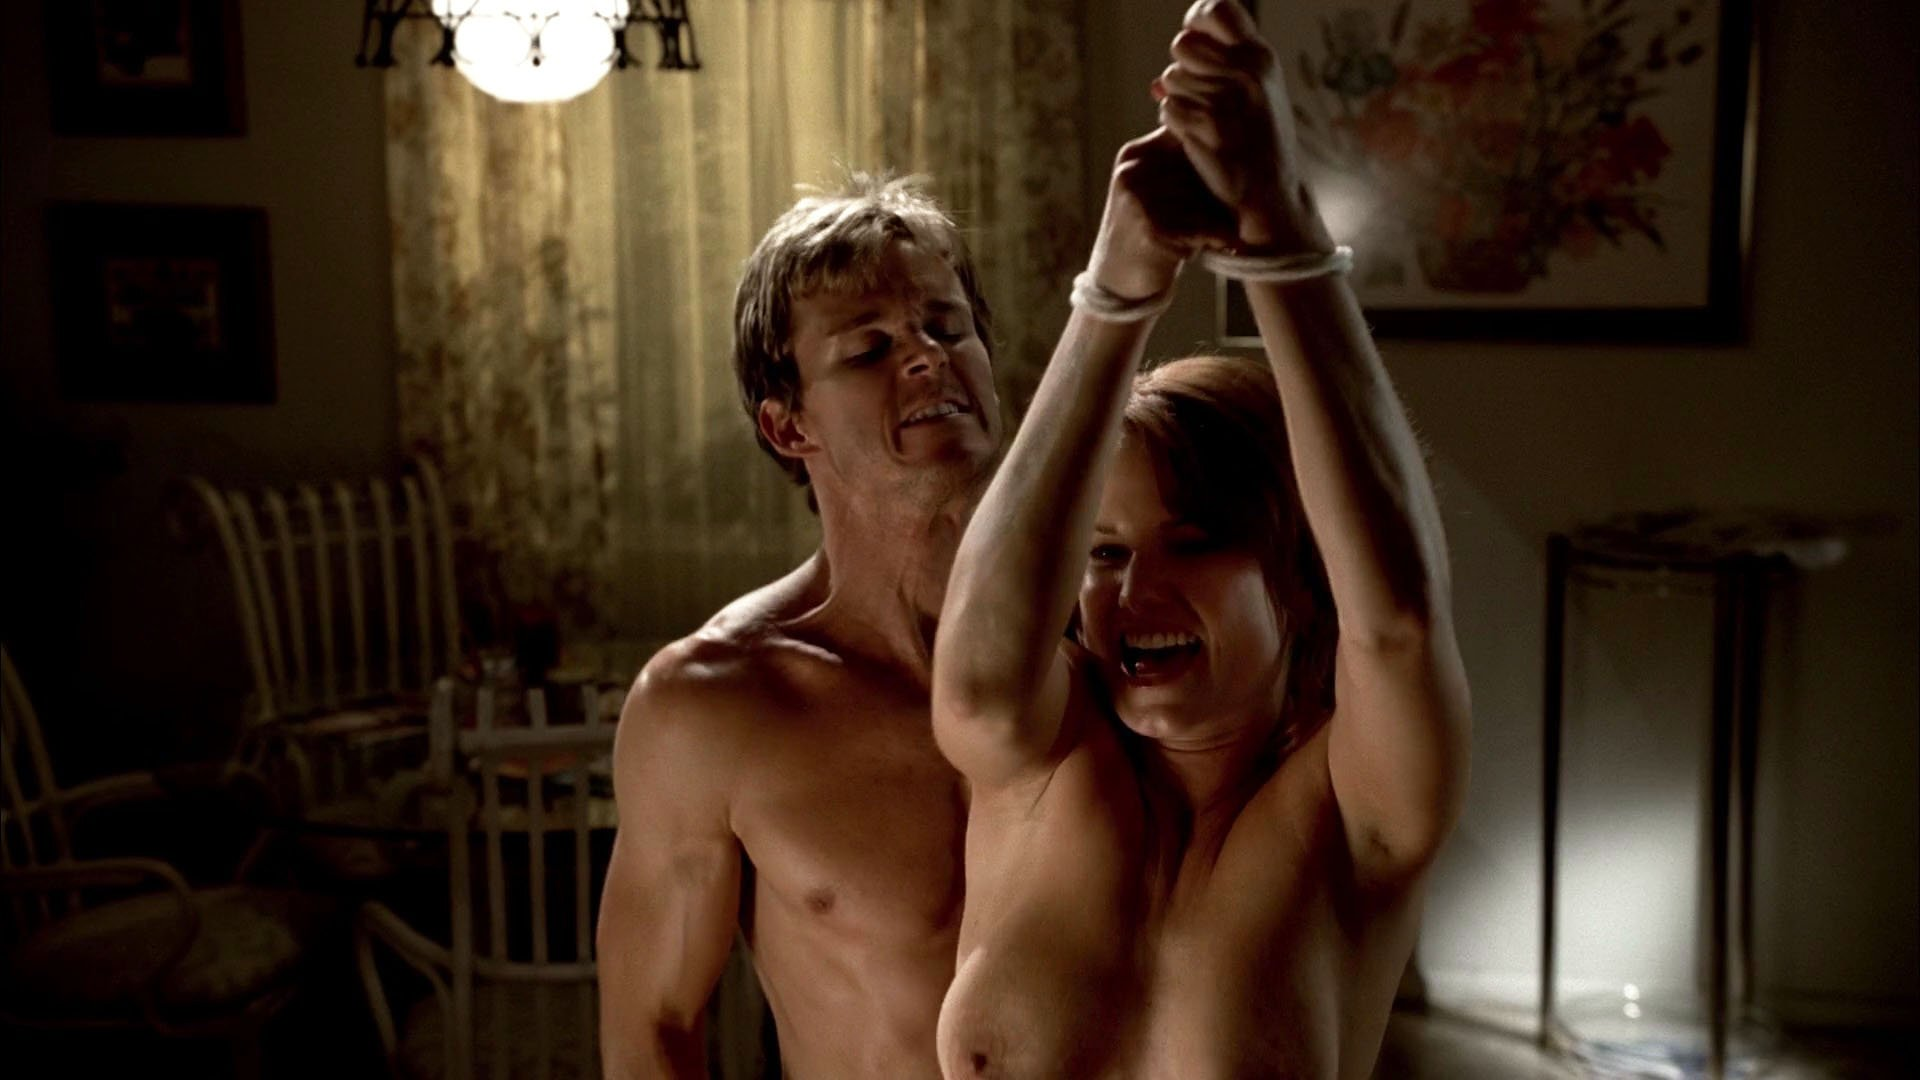 Danielle Sapia nude - True Blood s01e01 (2008)